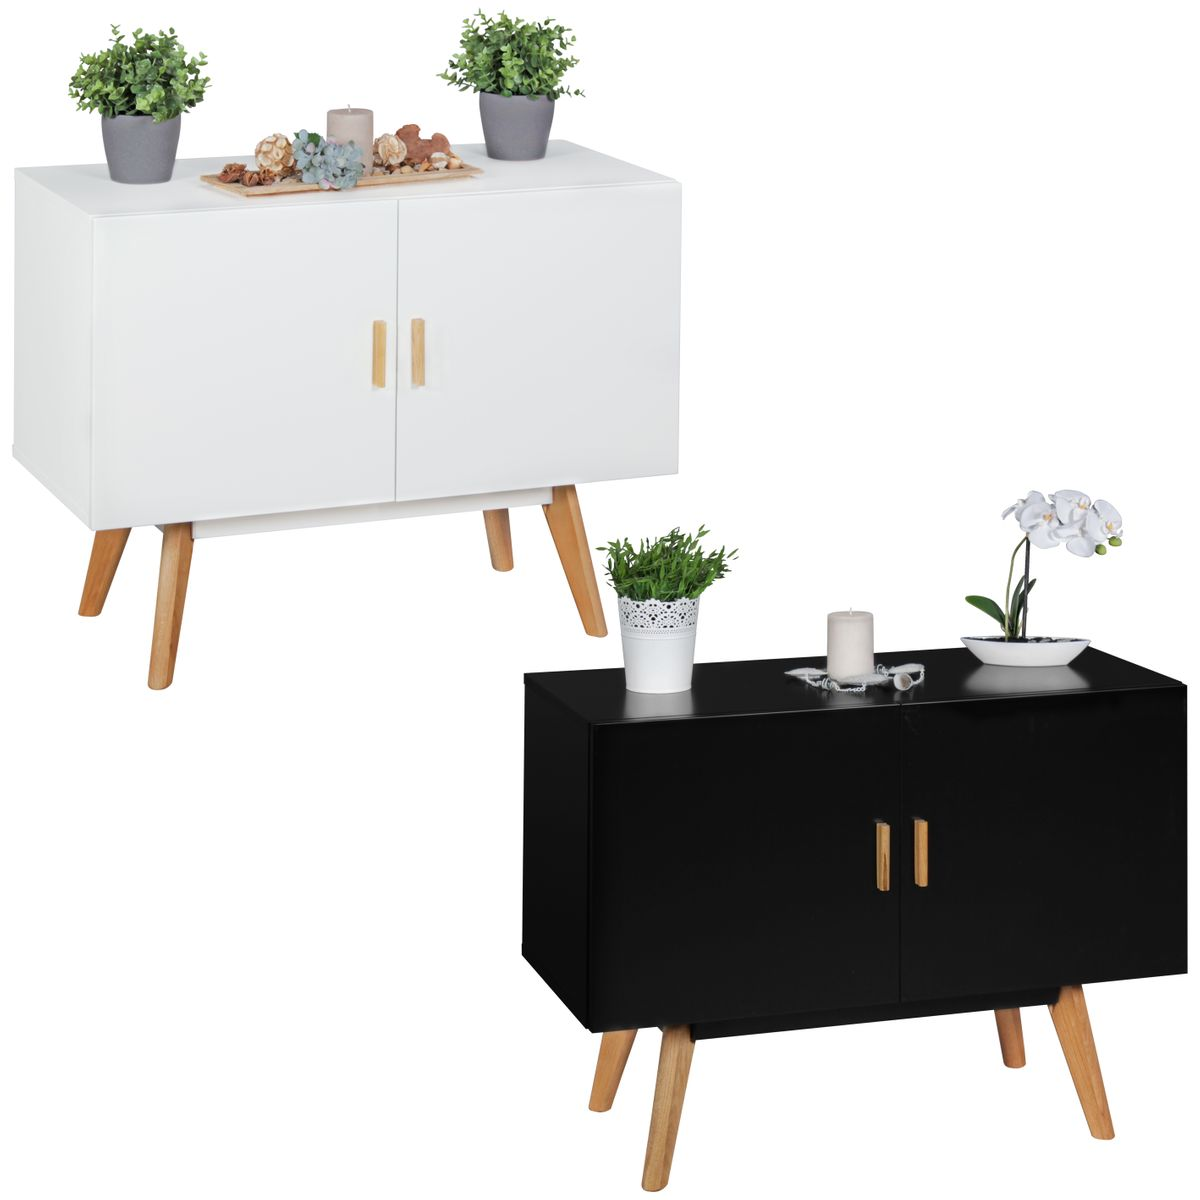 mdf buffet enfilade scanio 90 x 40 cm commode couloir hall. Black Bedroom Furniture Sets. Home Design Ideas